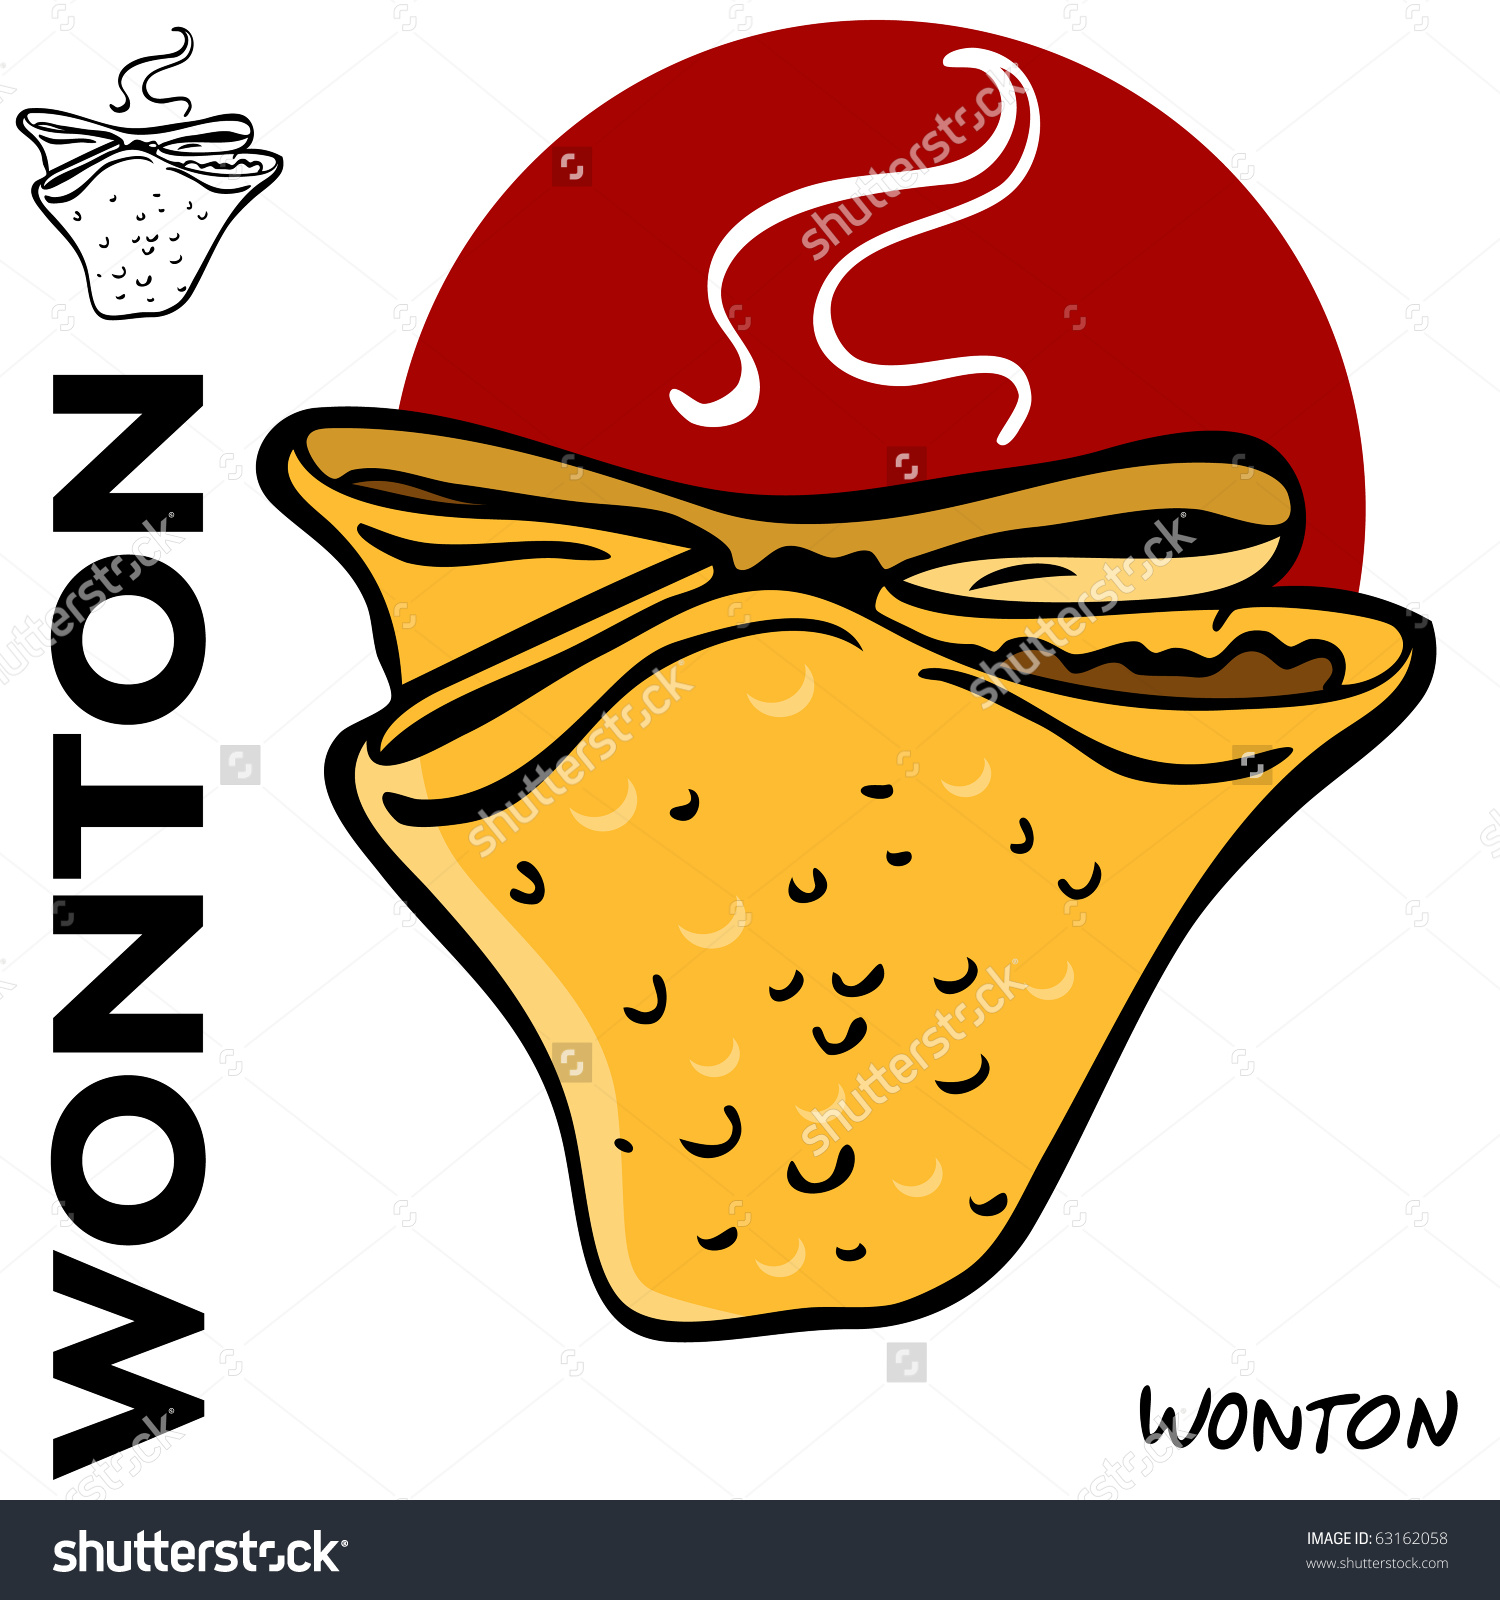 Fried Wonton Stock Vectors & Vector Clip Art.